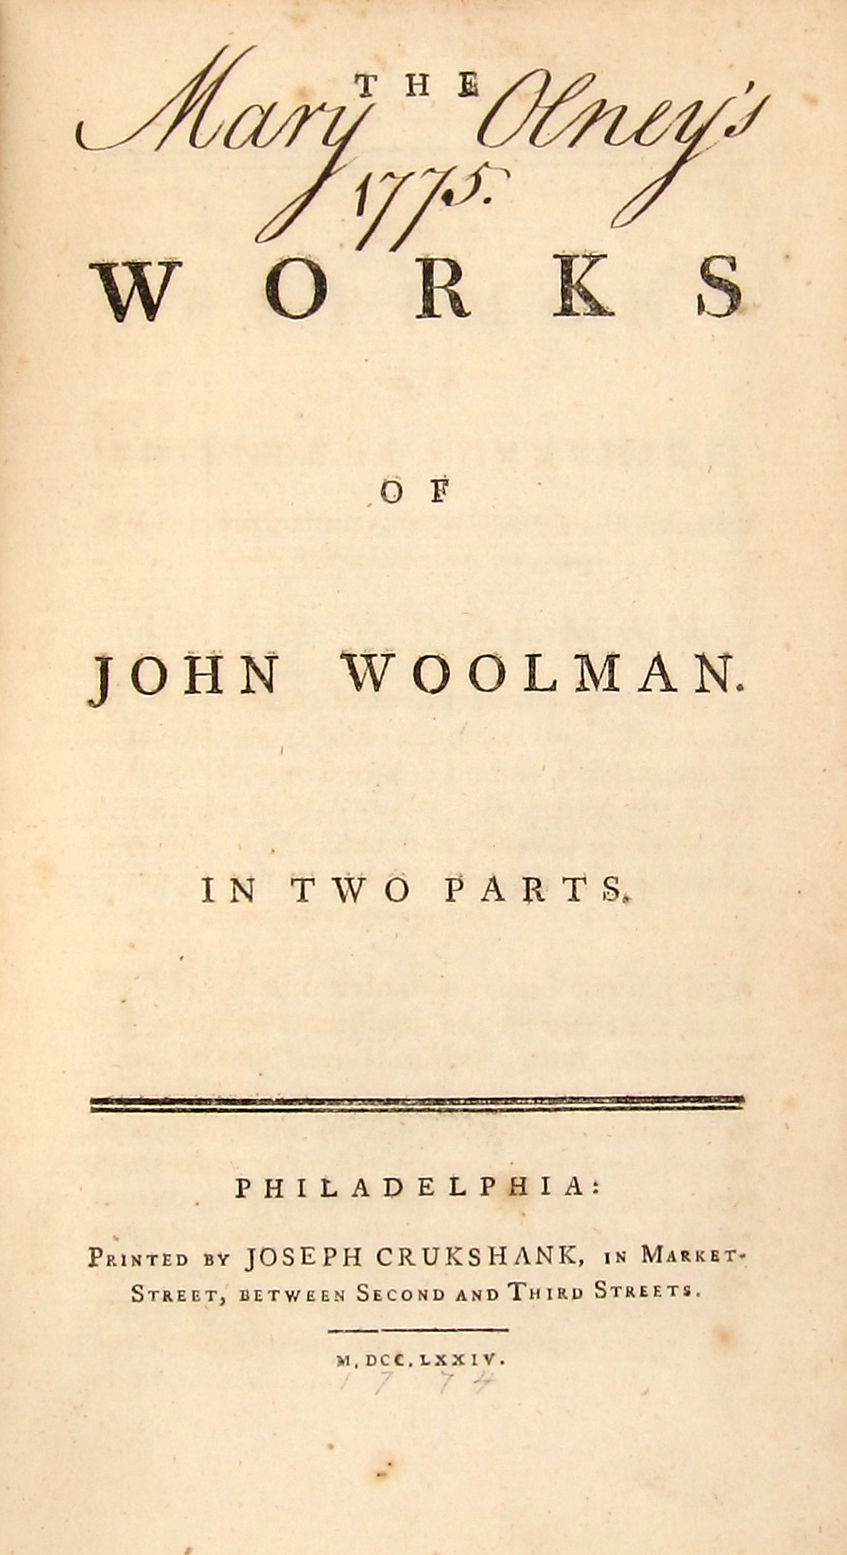 THE WORKS OF JOHN WOOLMAN  IN TWO PARTS  [including] A